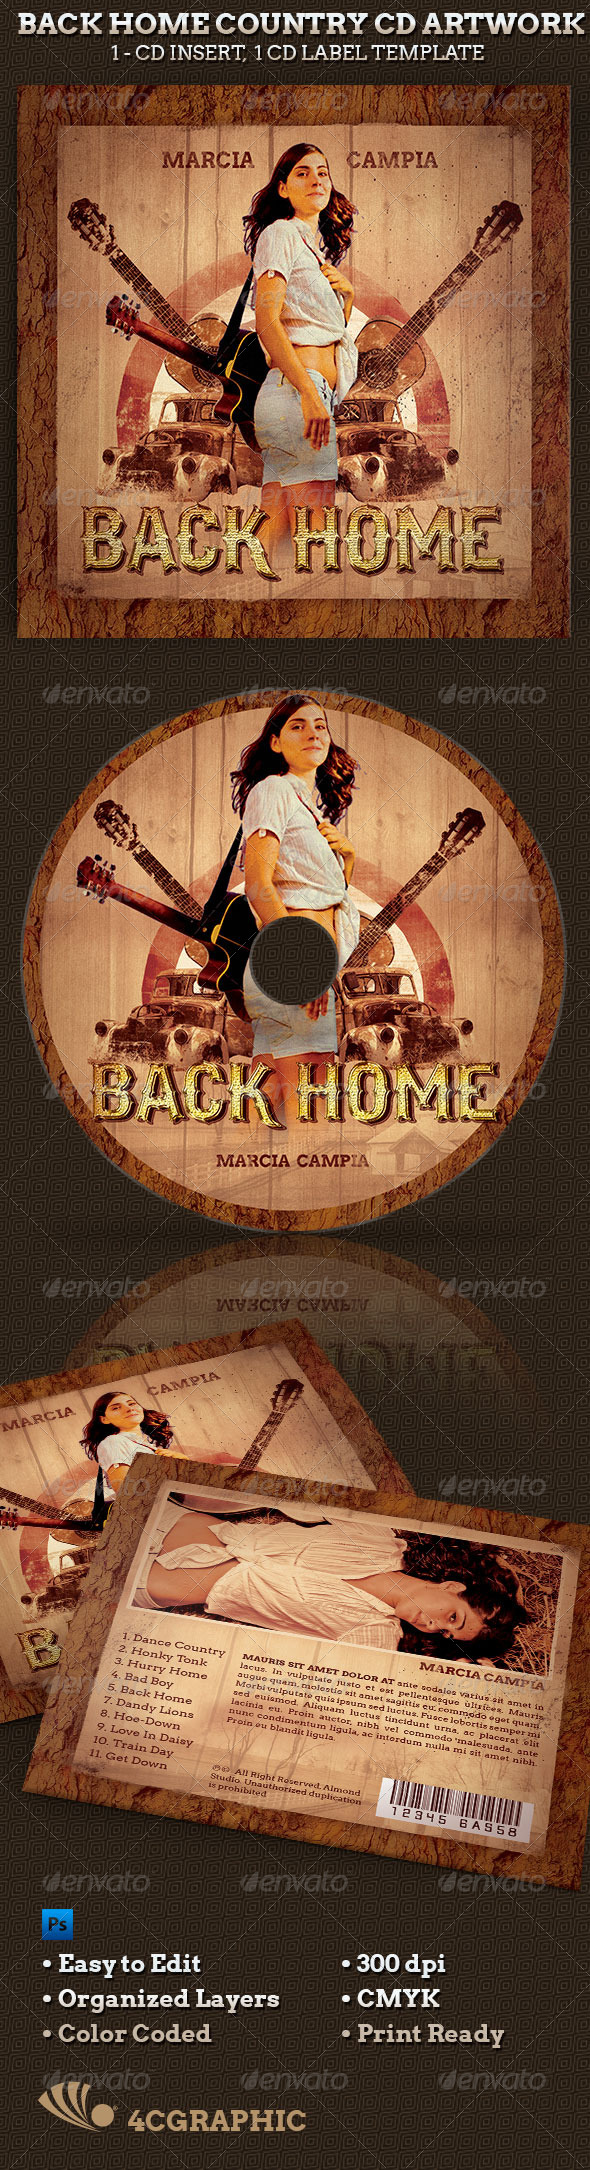 GraphicRiver Back Home Country Music CD Artwork 6916154